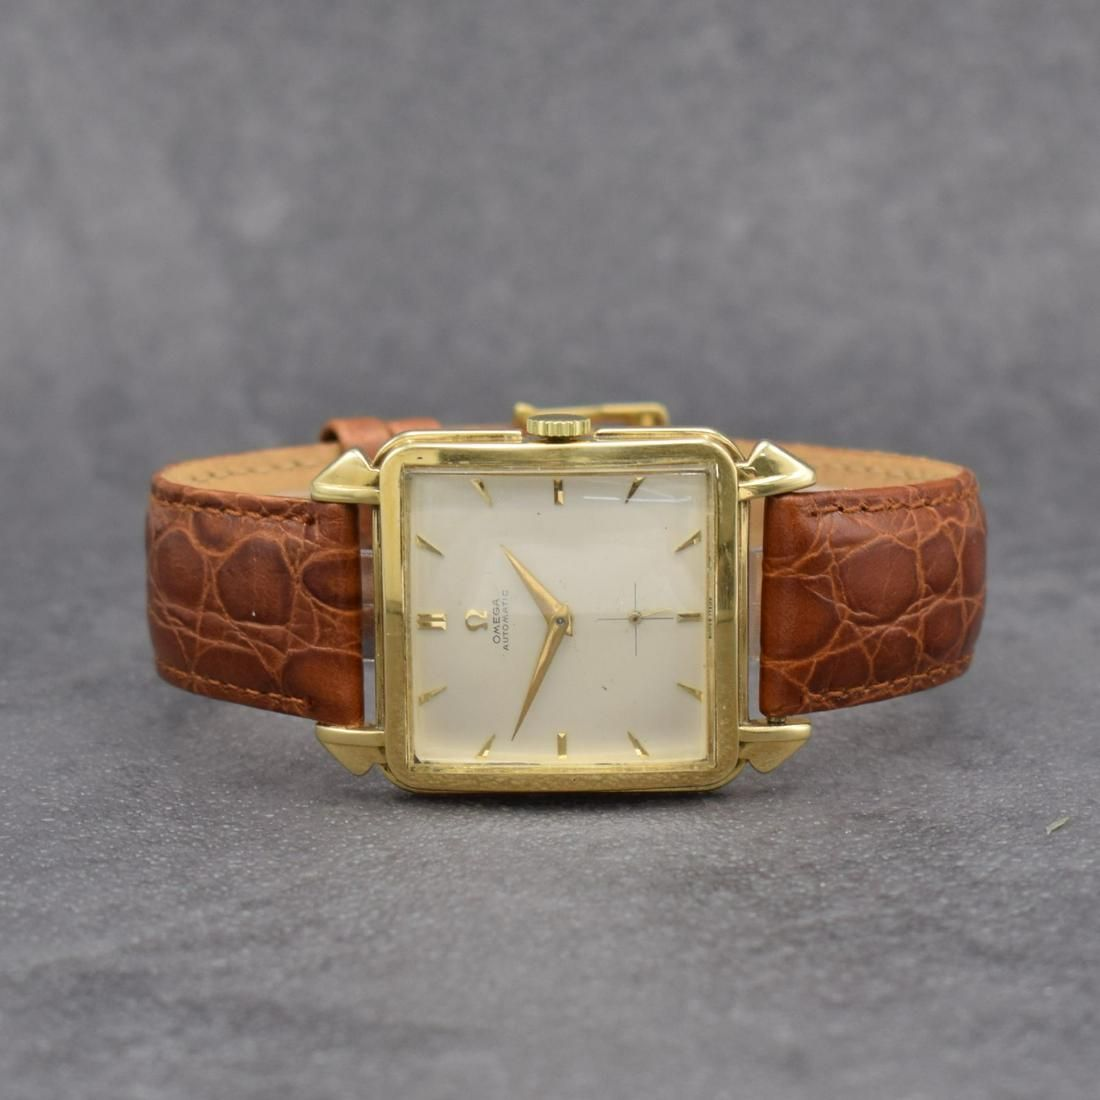 OMEGA square 14k yellow gold gents wristwatch